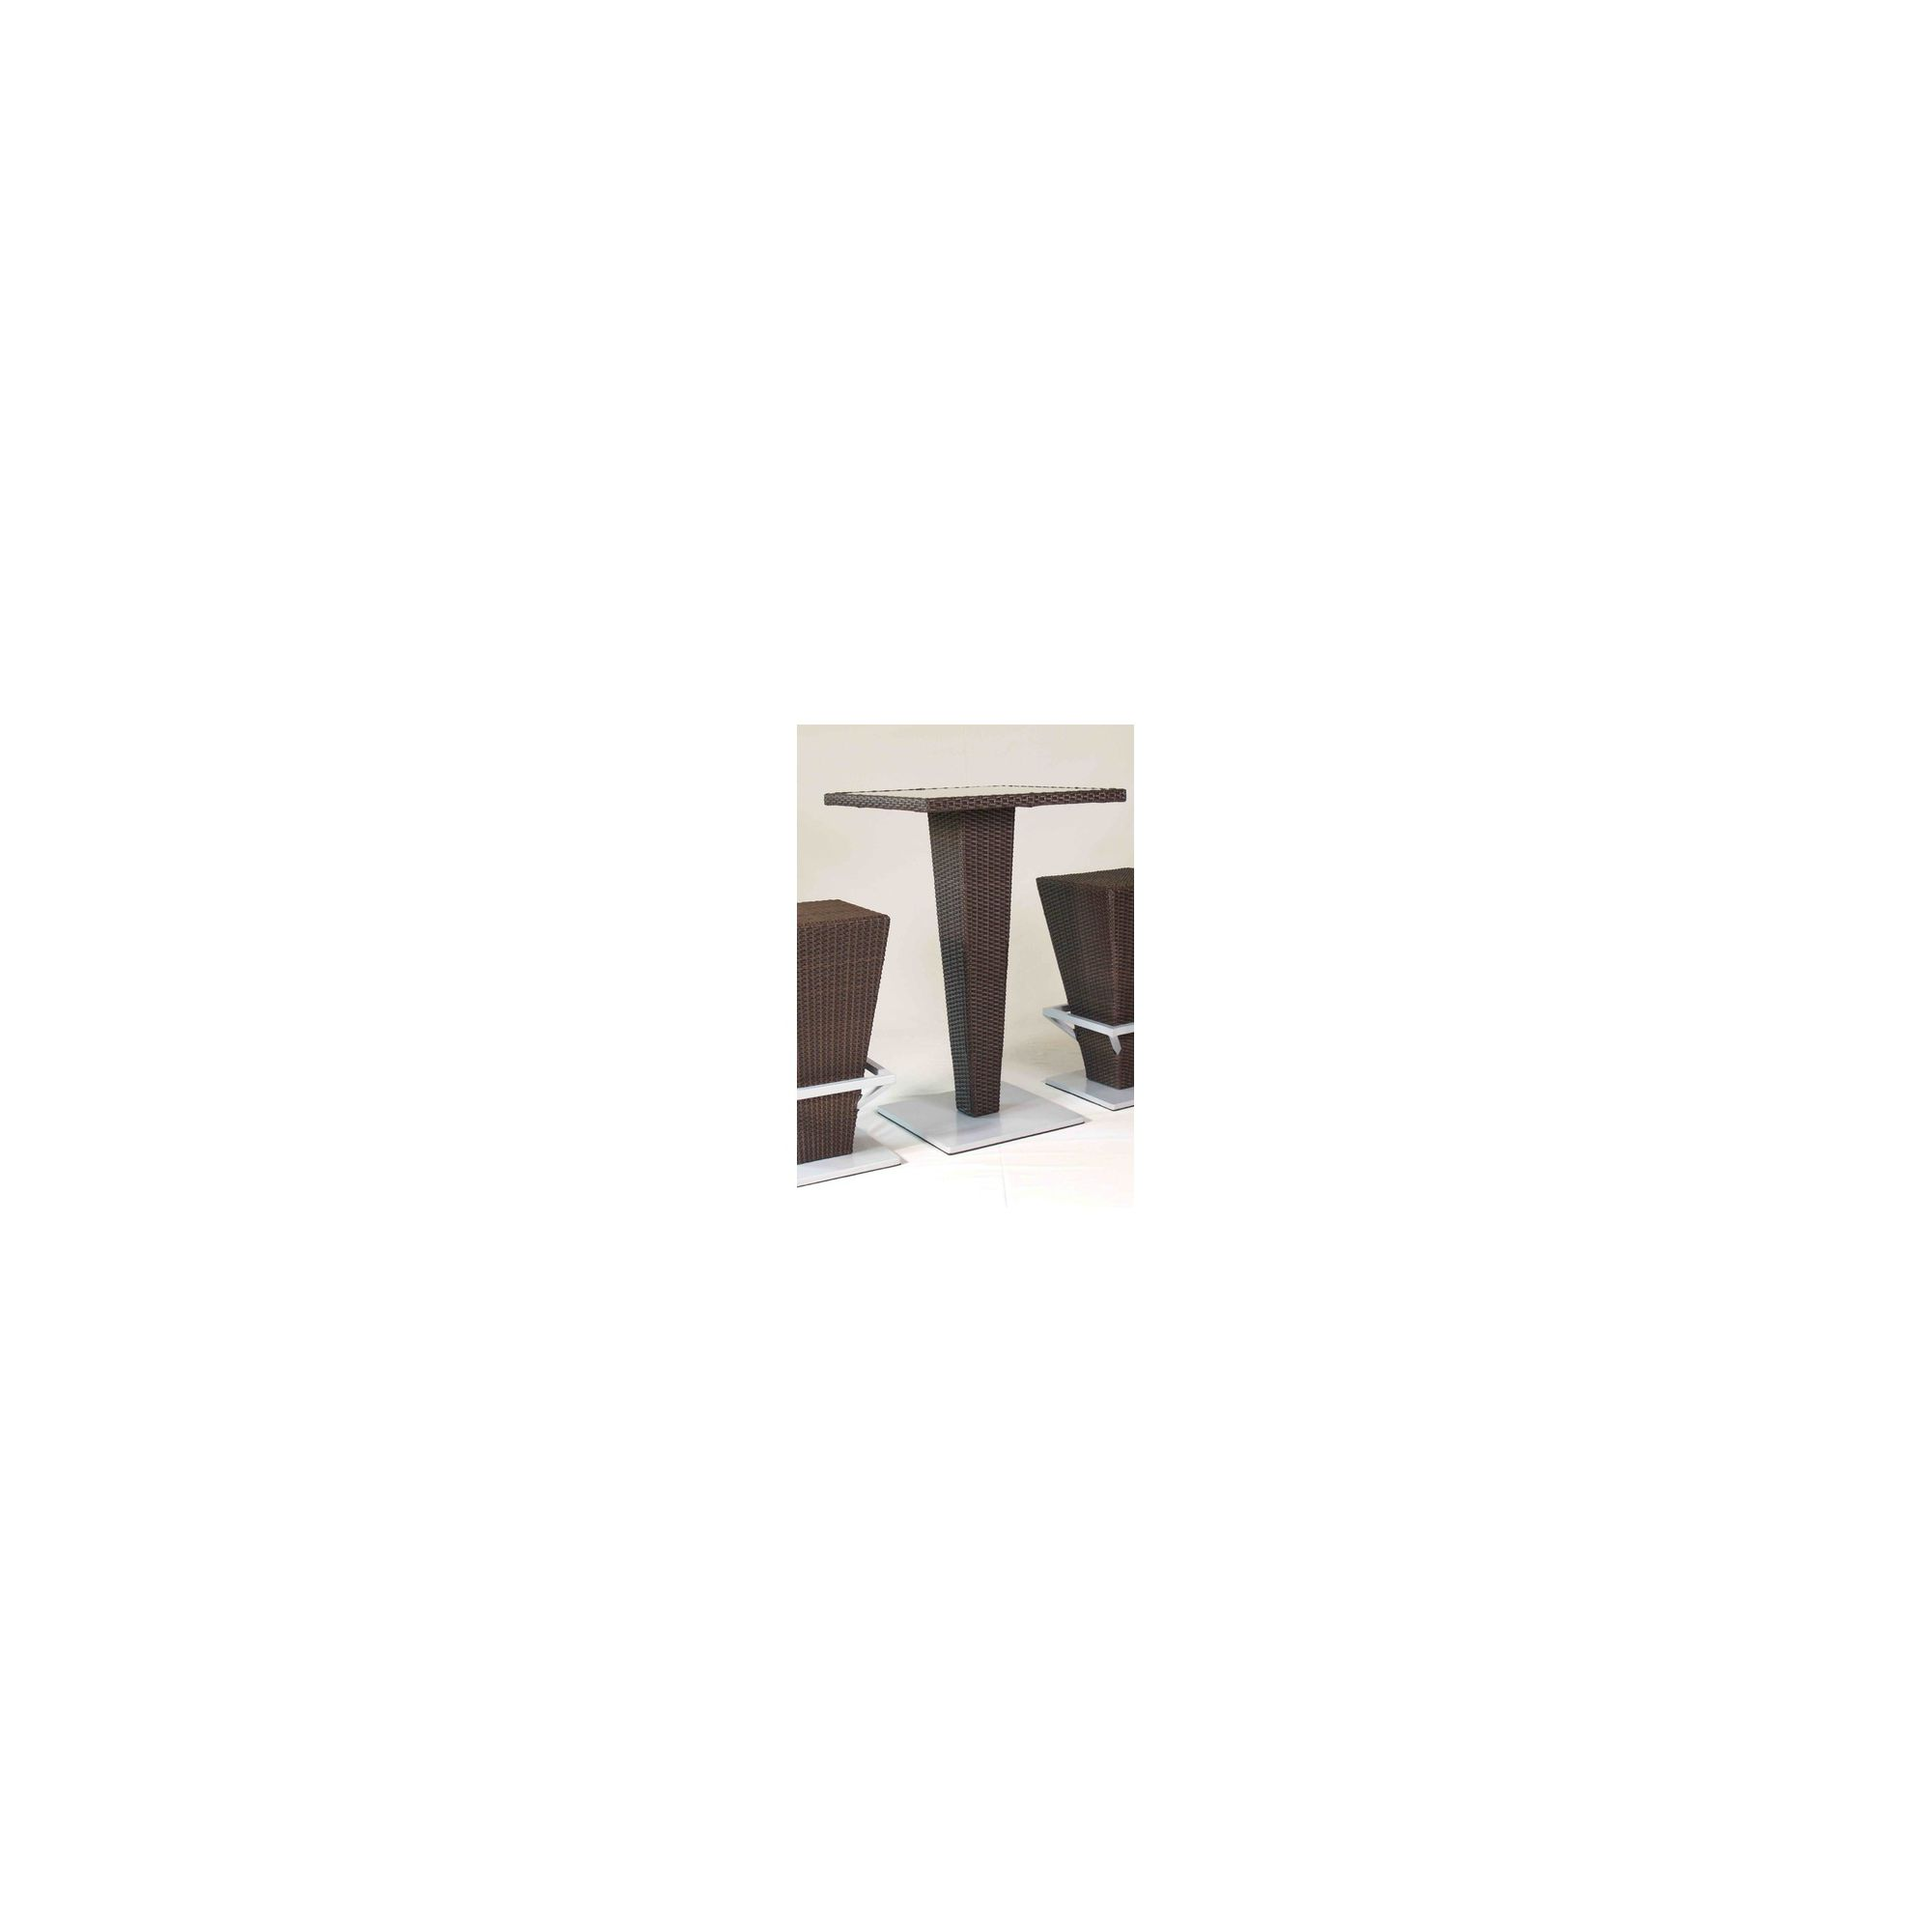 SkyLine Design Liada Bar Table - Super White 10mm at Tesco Direct